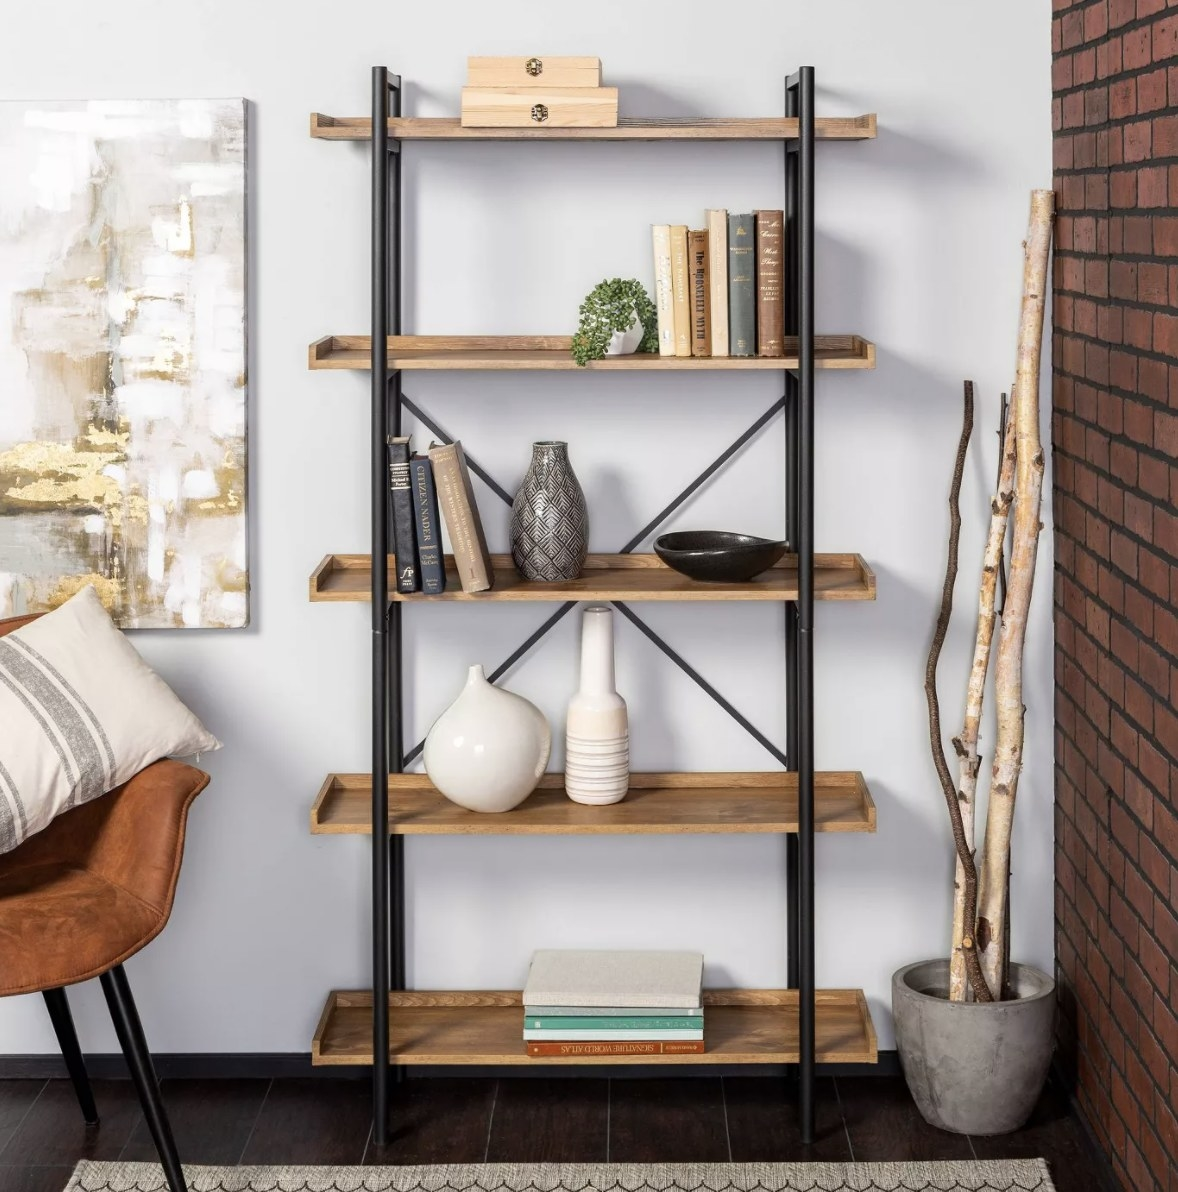 the bookshelf with books, vases, and a plant filled inside of it